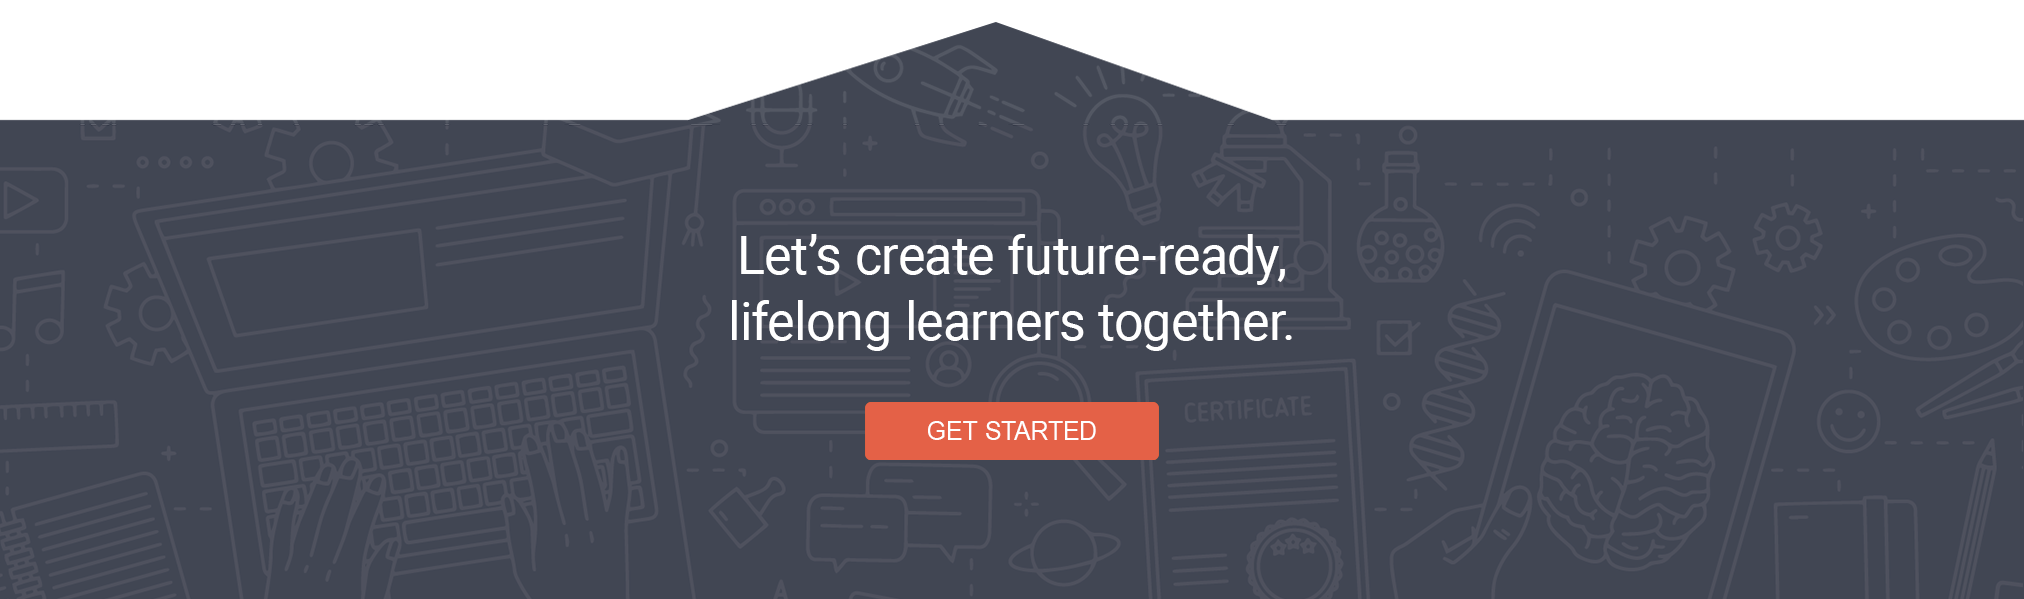 Let's create future-ready, lifelong leaners together. GET STARTED